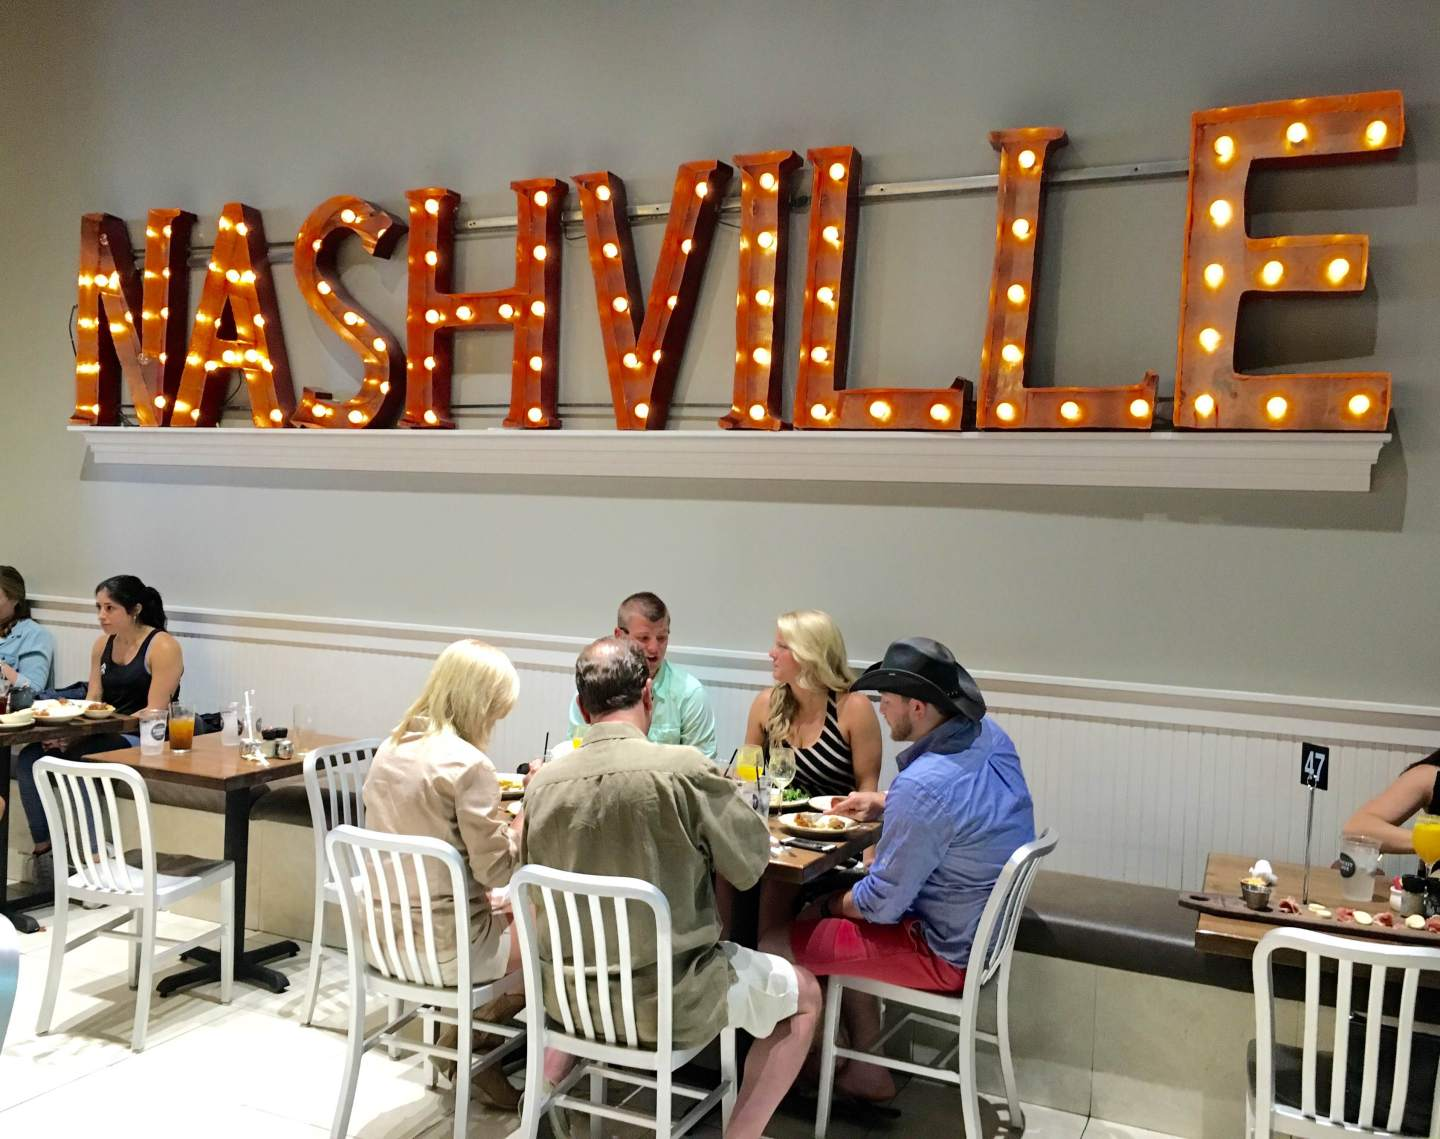 Jet-setting Spirit's Nashville City Guide